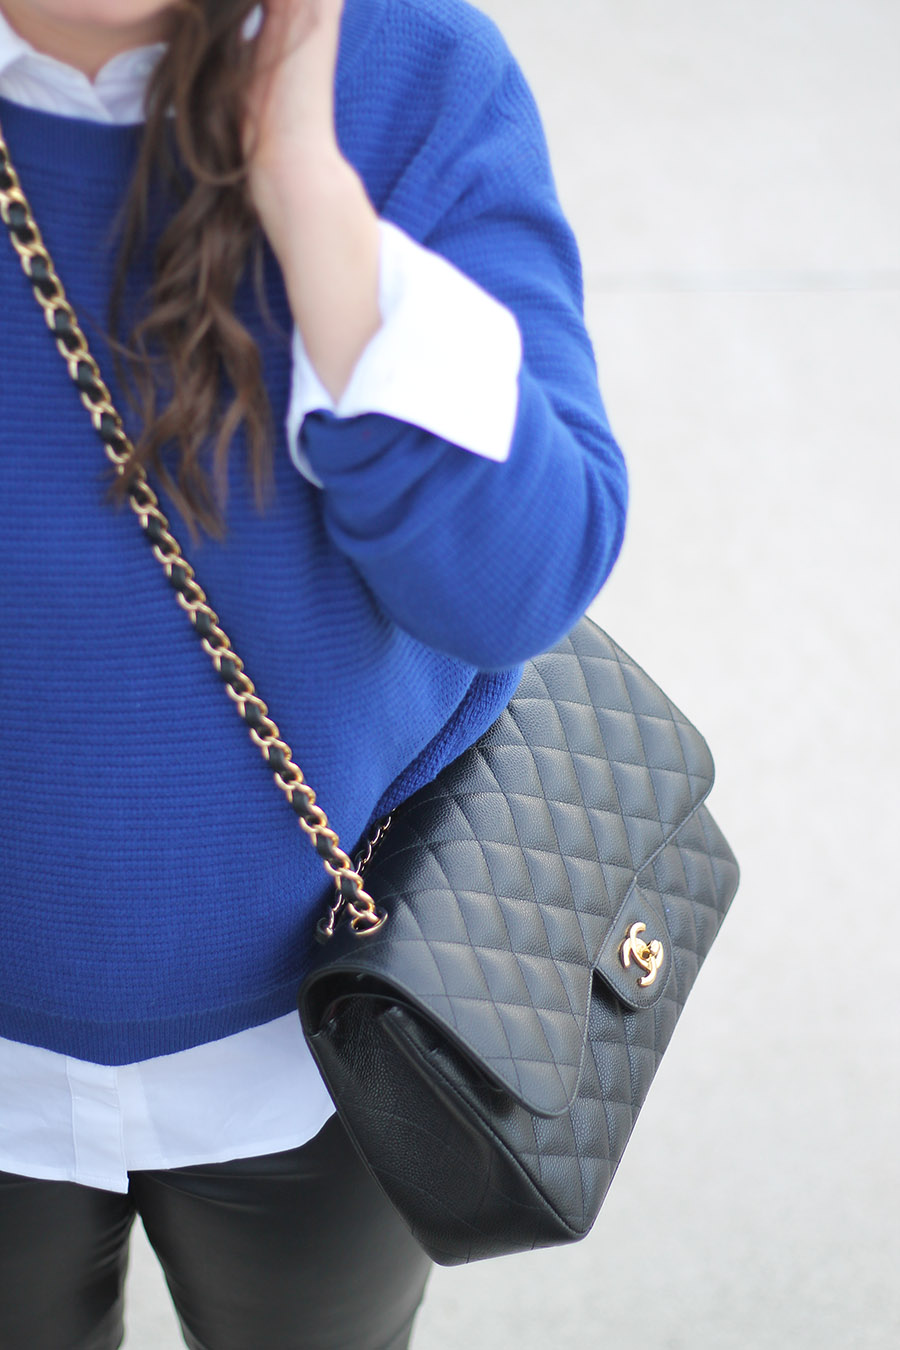 Accessorize, Fashion, Style, Luxury Handbag, Chanel 2.55 Classic Double Flap